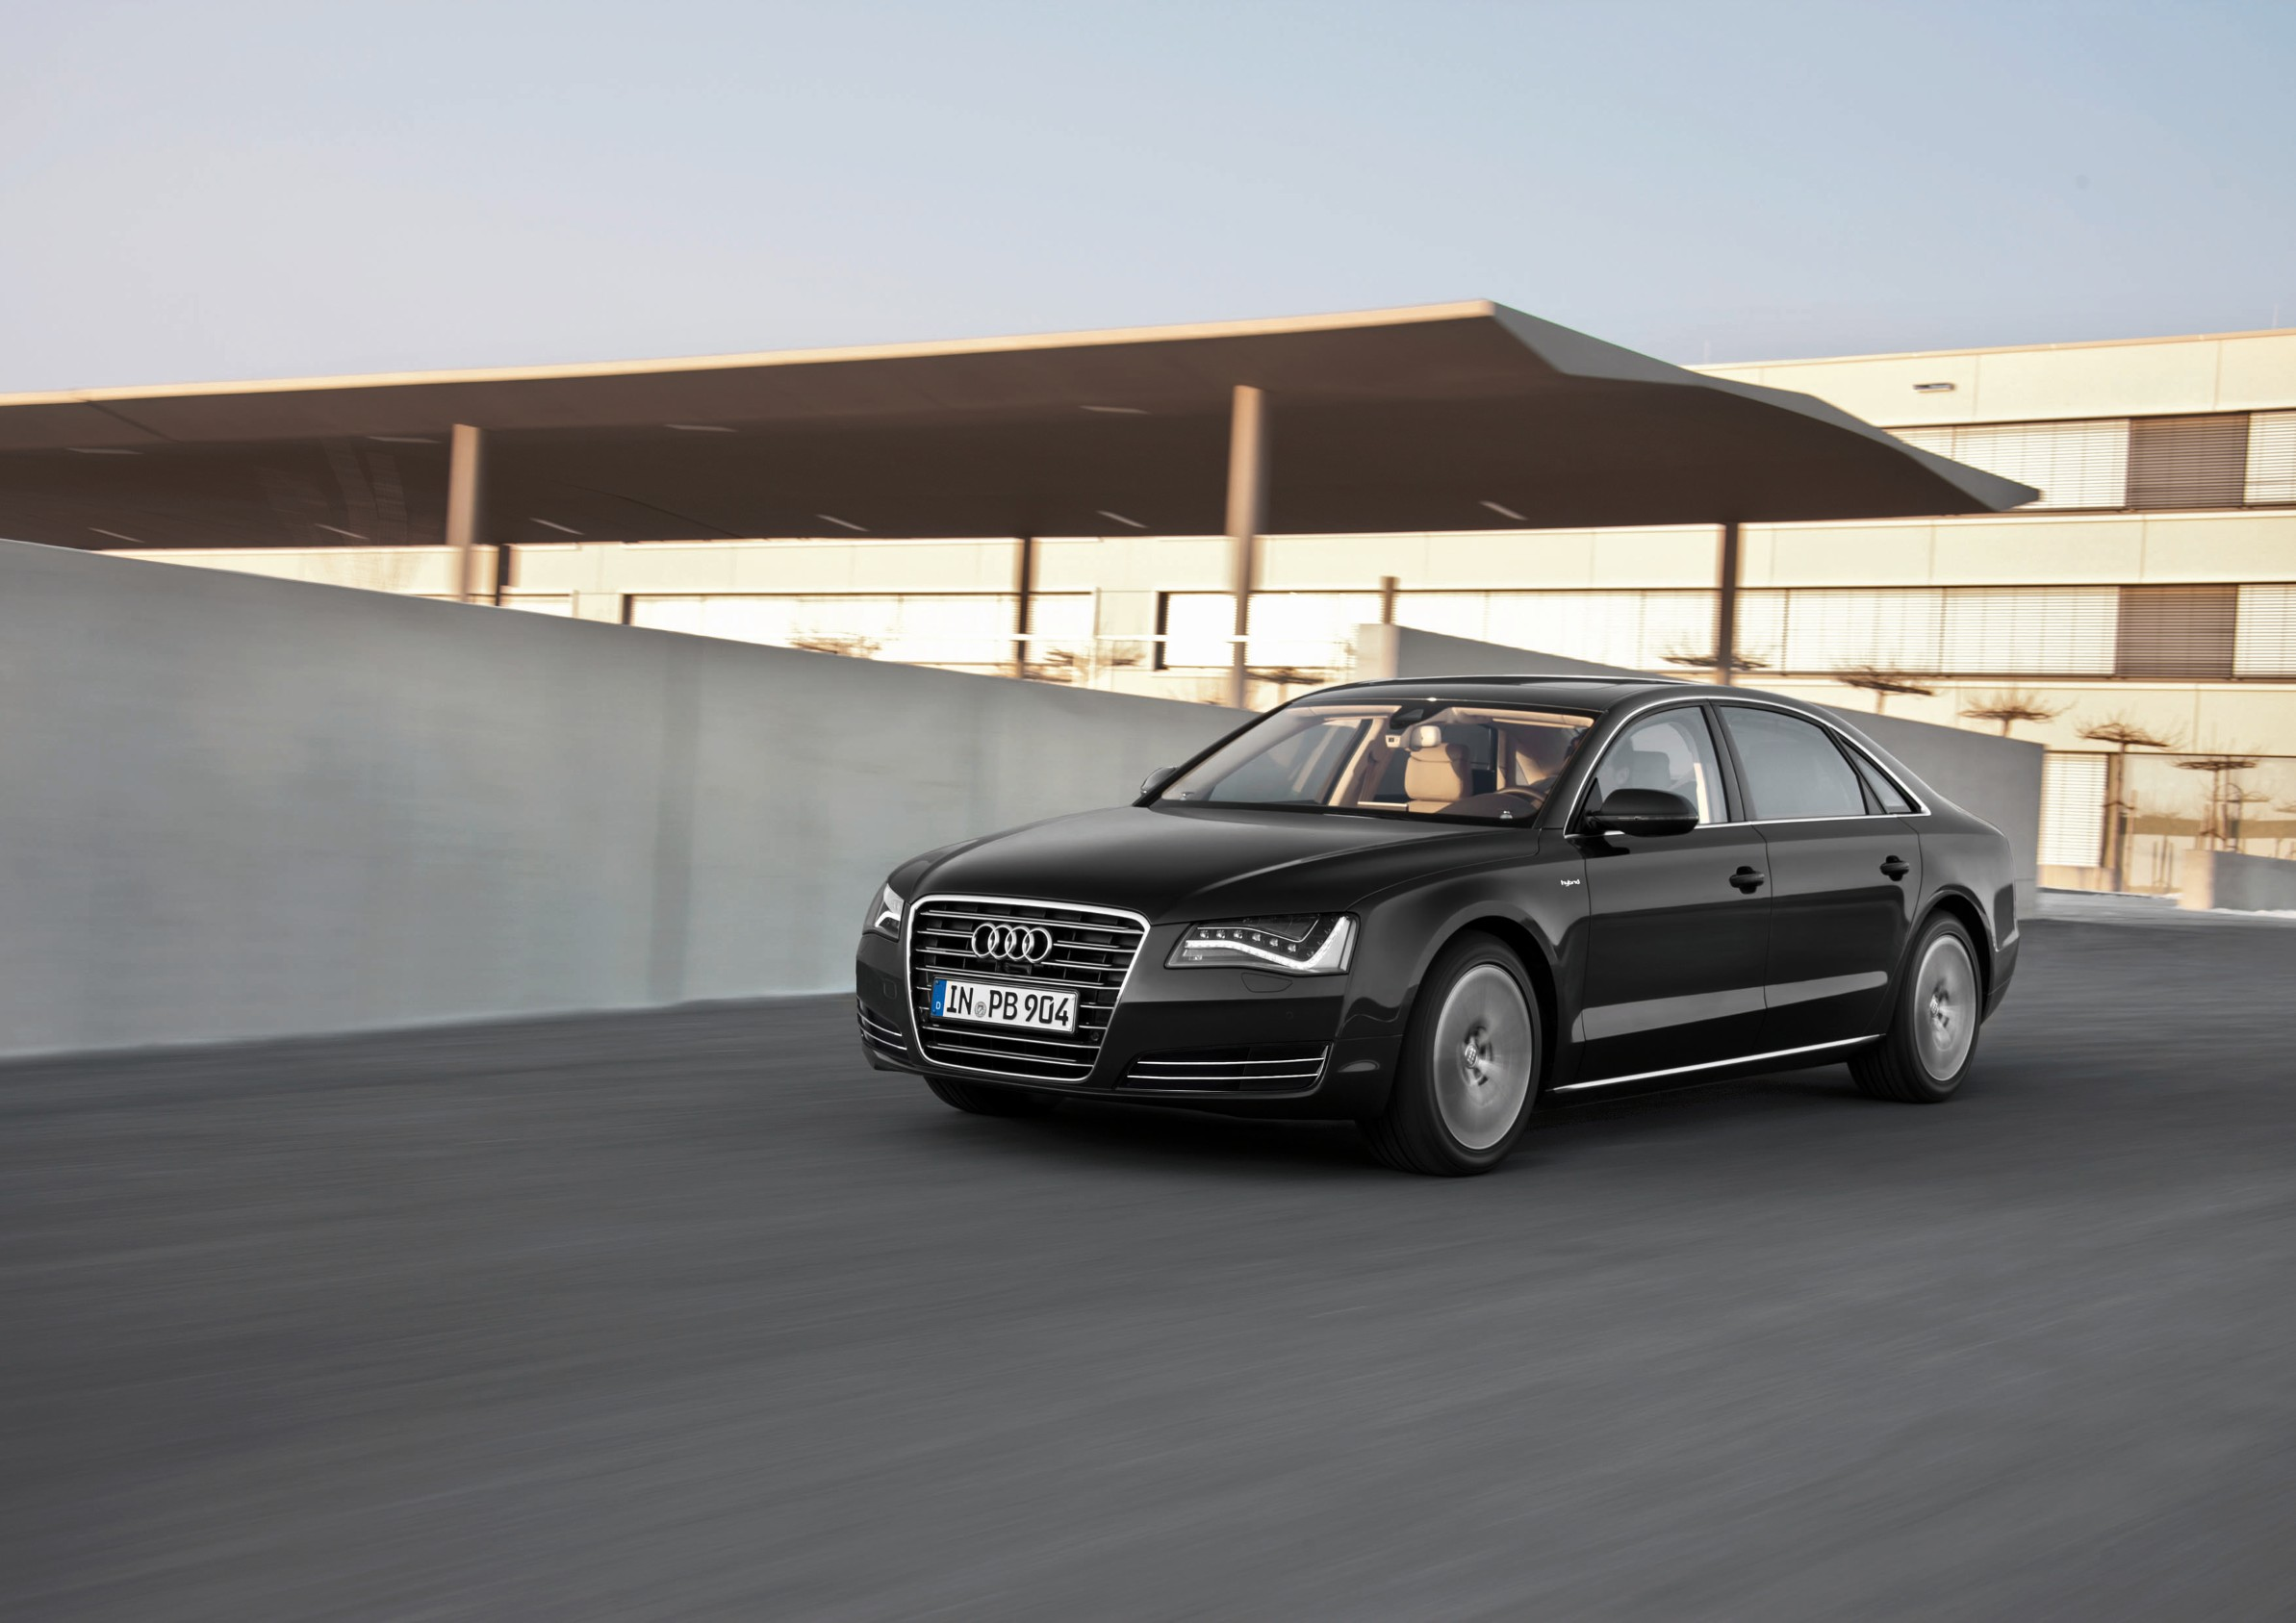 plus pictures wallpaper audi information specs